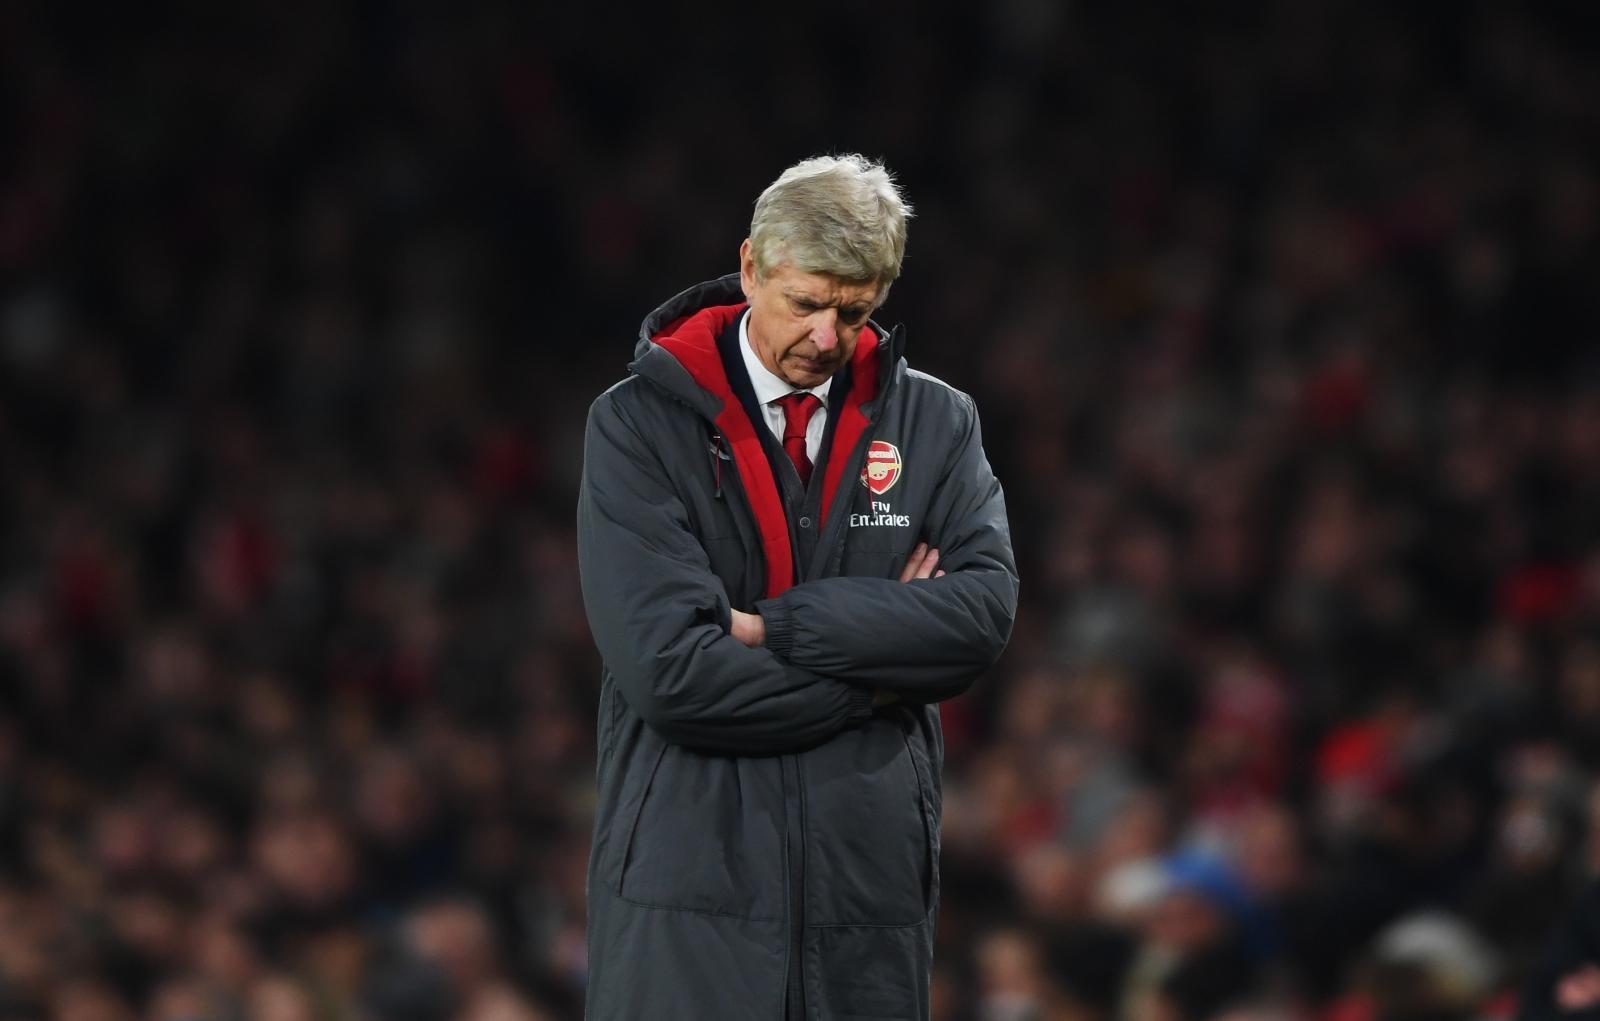 Arsene Wenger says he would have committed suicide